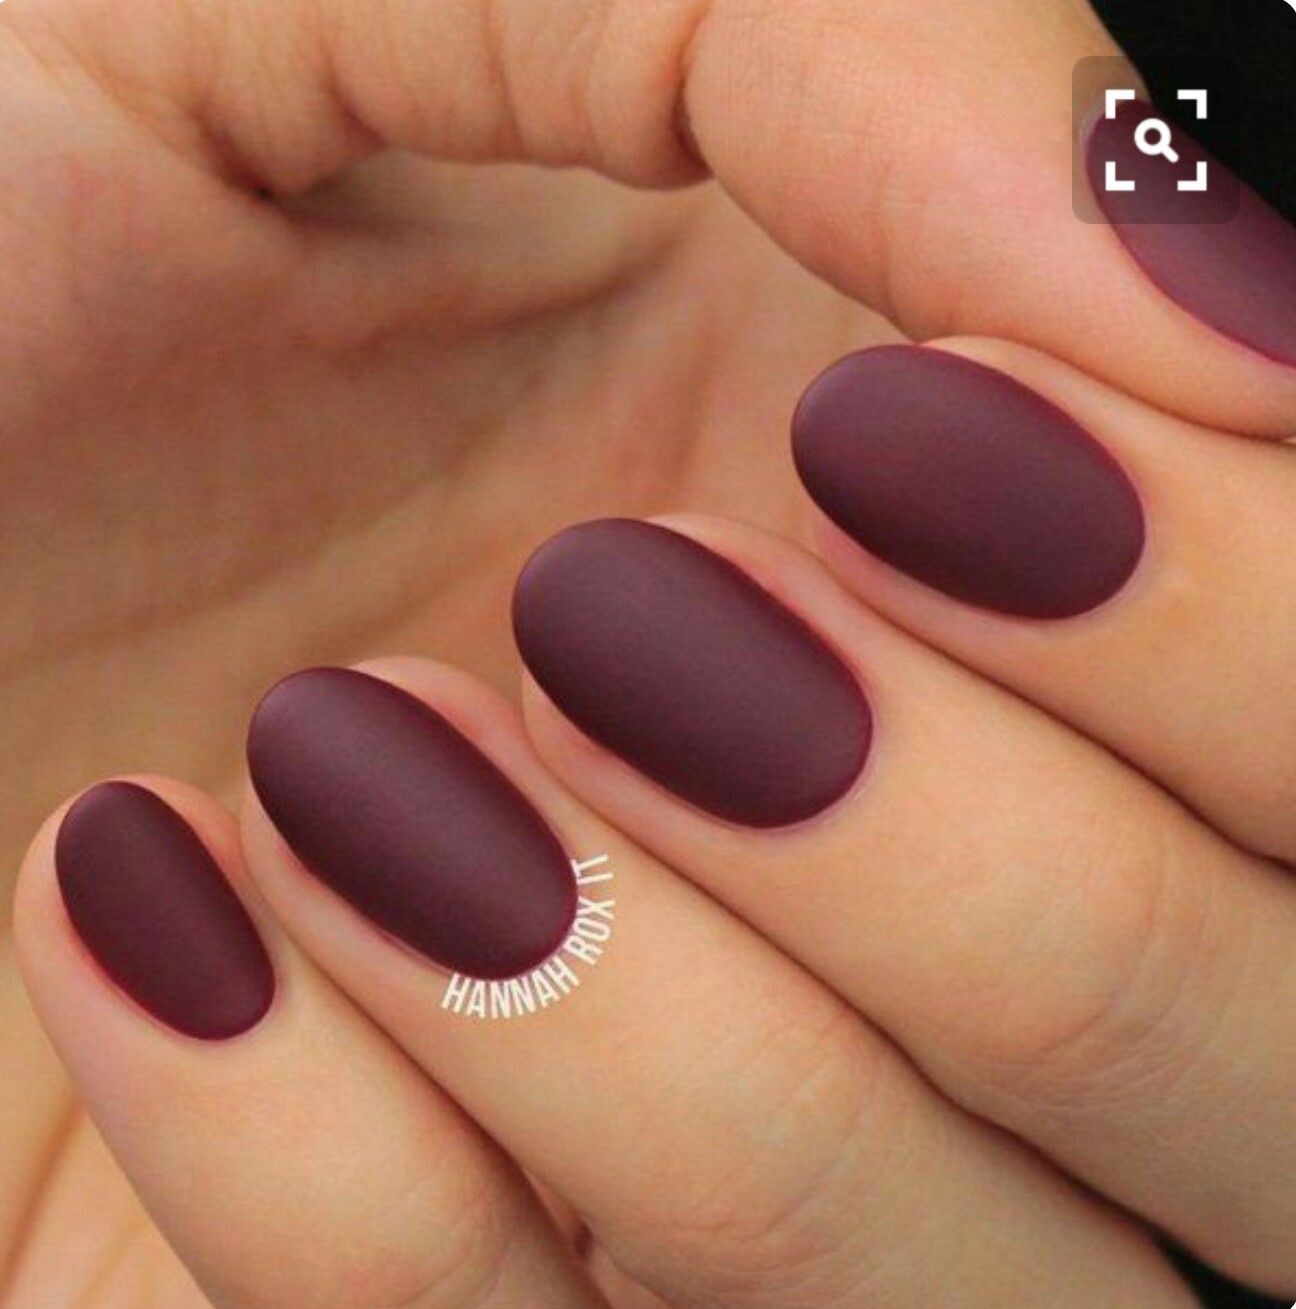 Manicure - Pin By Dayanara Mendez On Cute Pinterest Round Nails, Nail Inspo